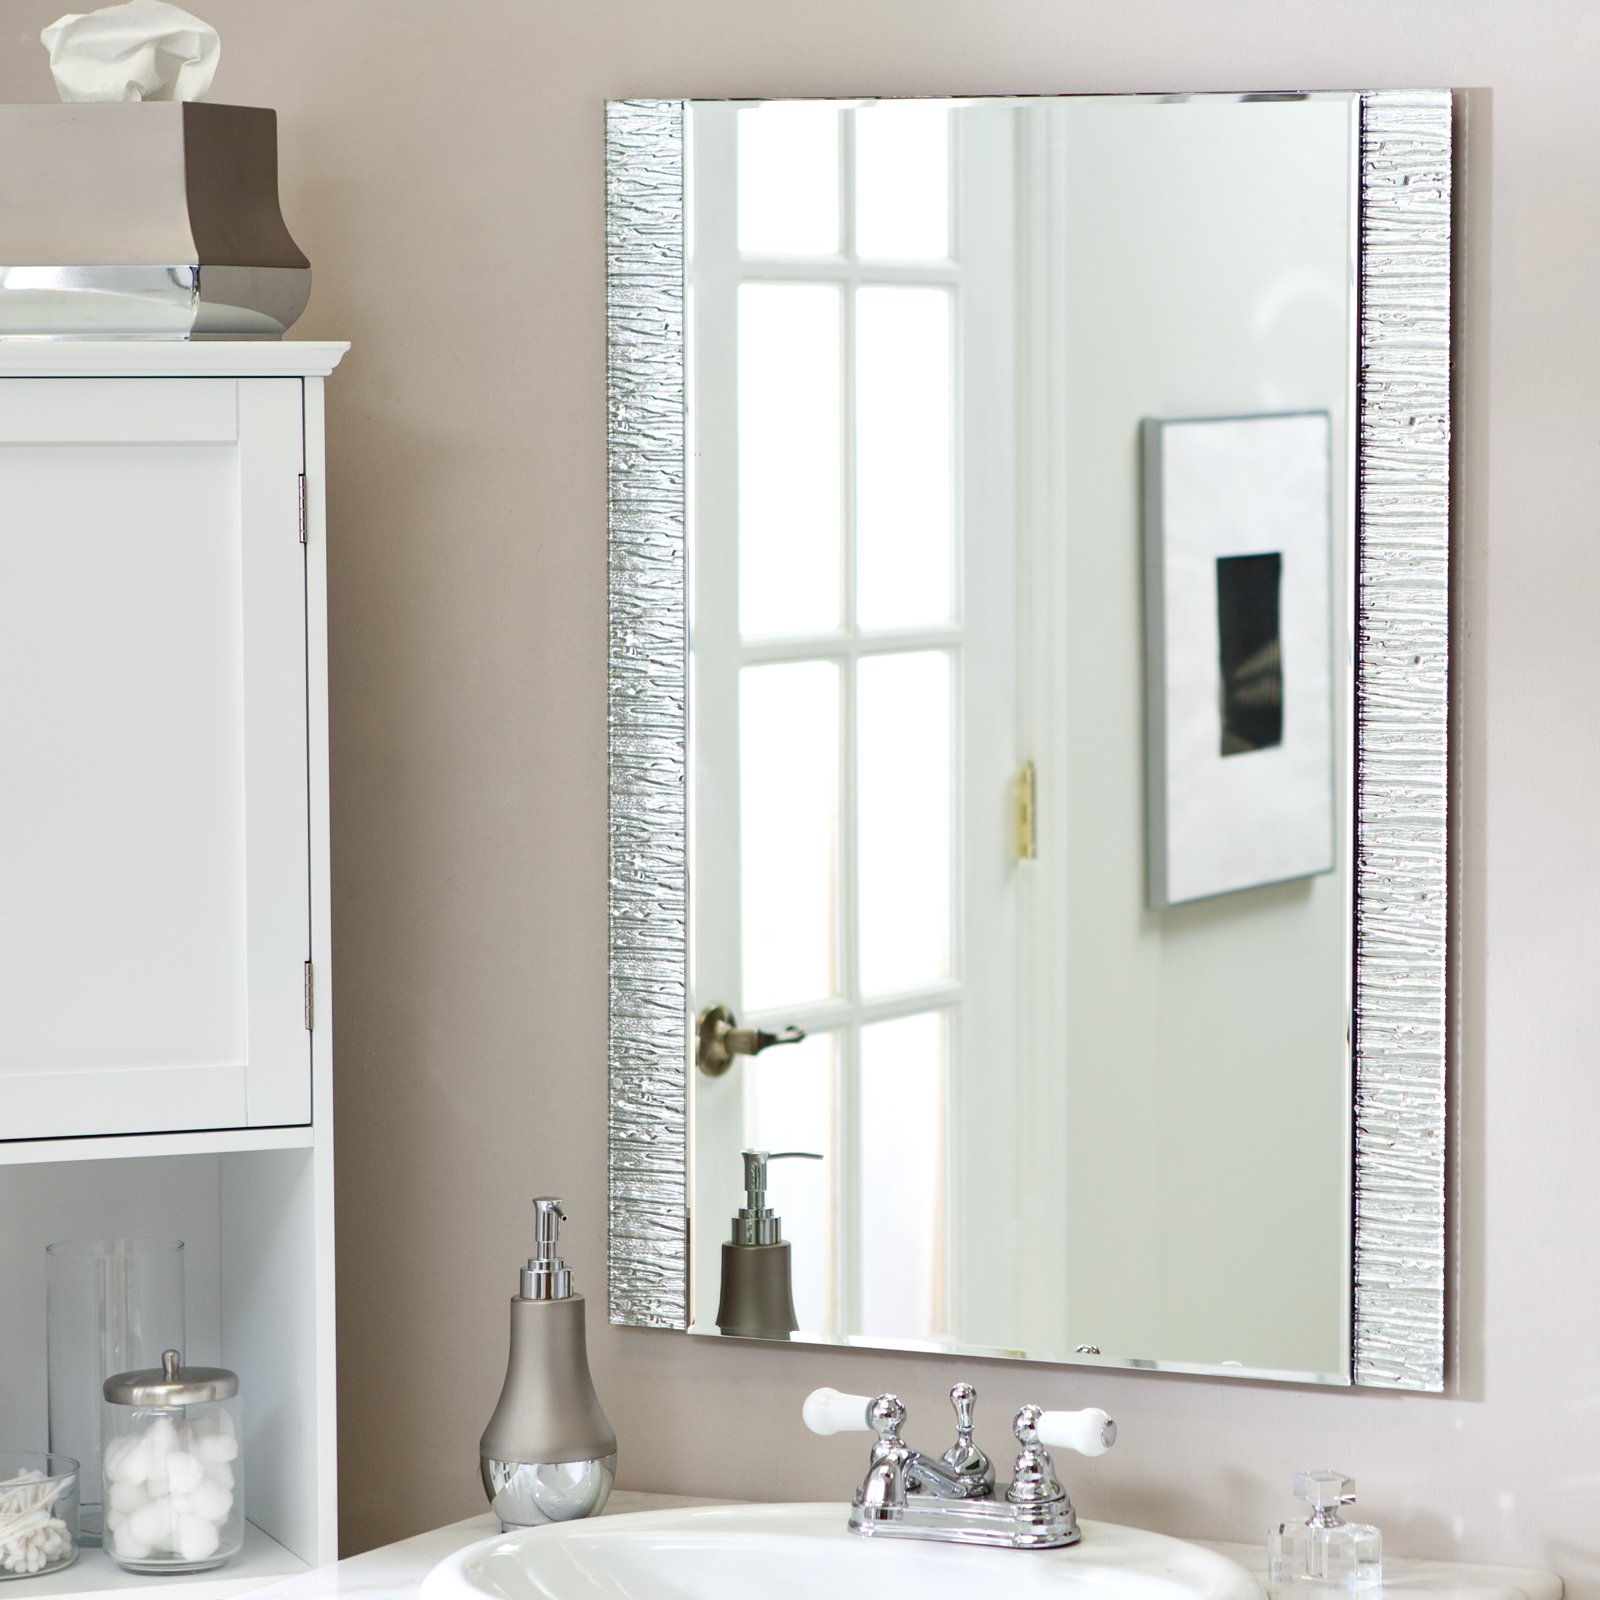 Wall mirrors dcor wonderland frameless molten wall mirror 235w x 315h in amipublicfo Choice Image